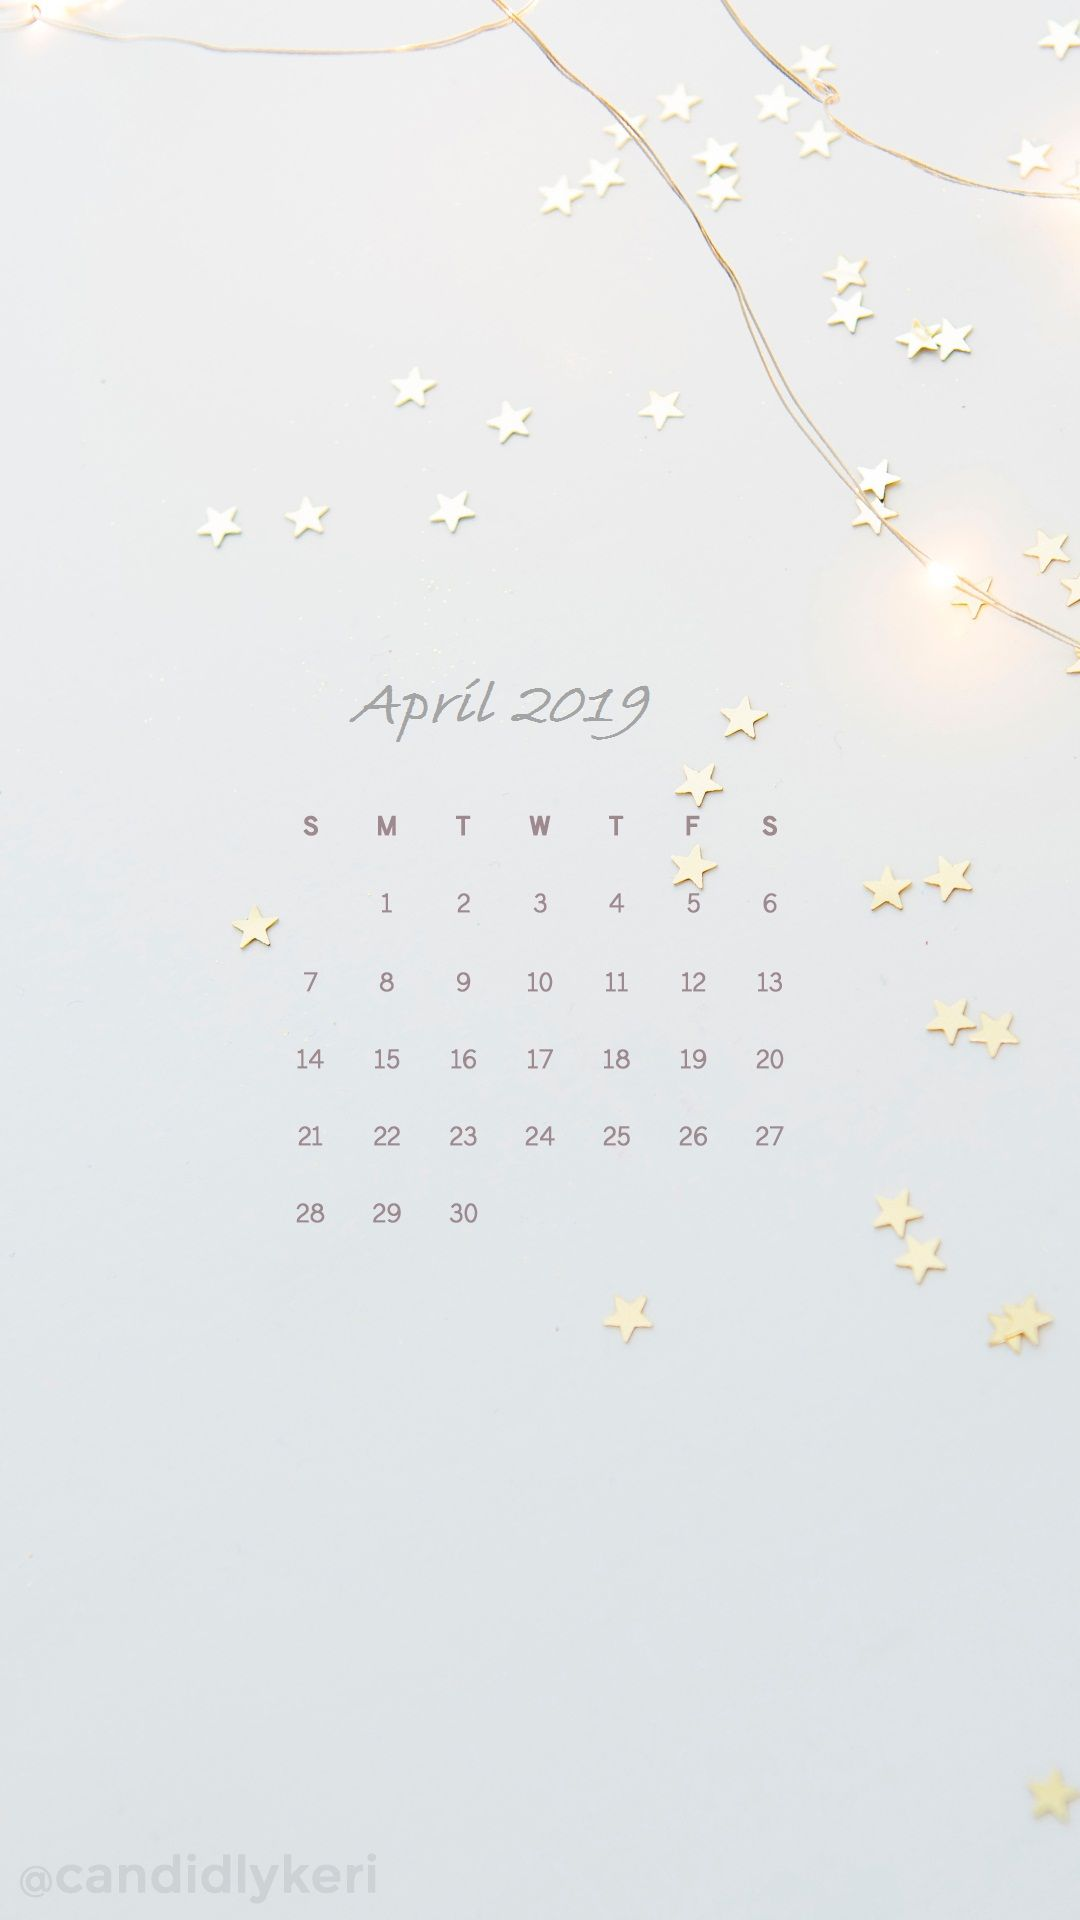 April 2019 Iphone Calendar Wallpaper Calendar Wallpaper Plain